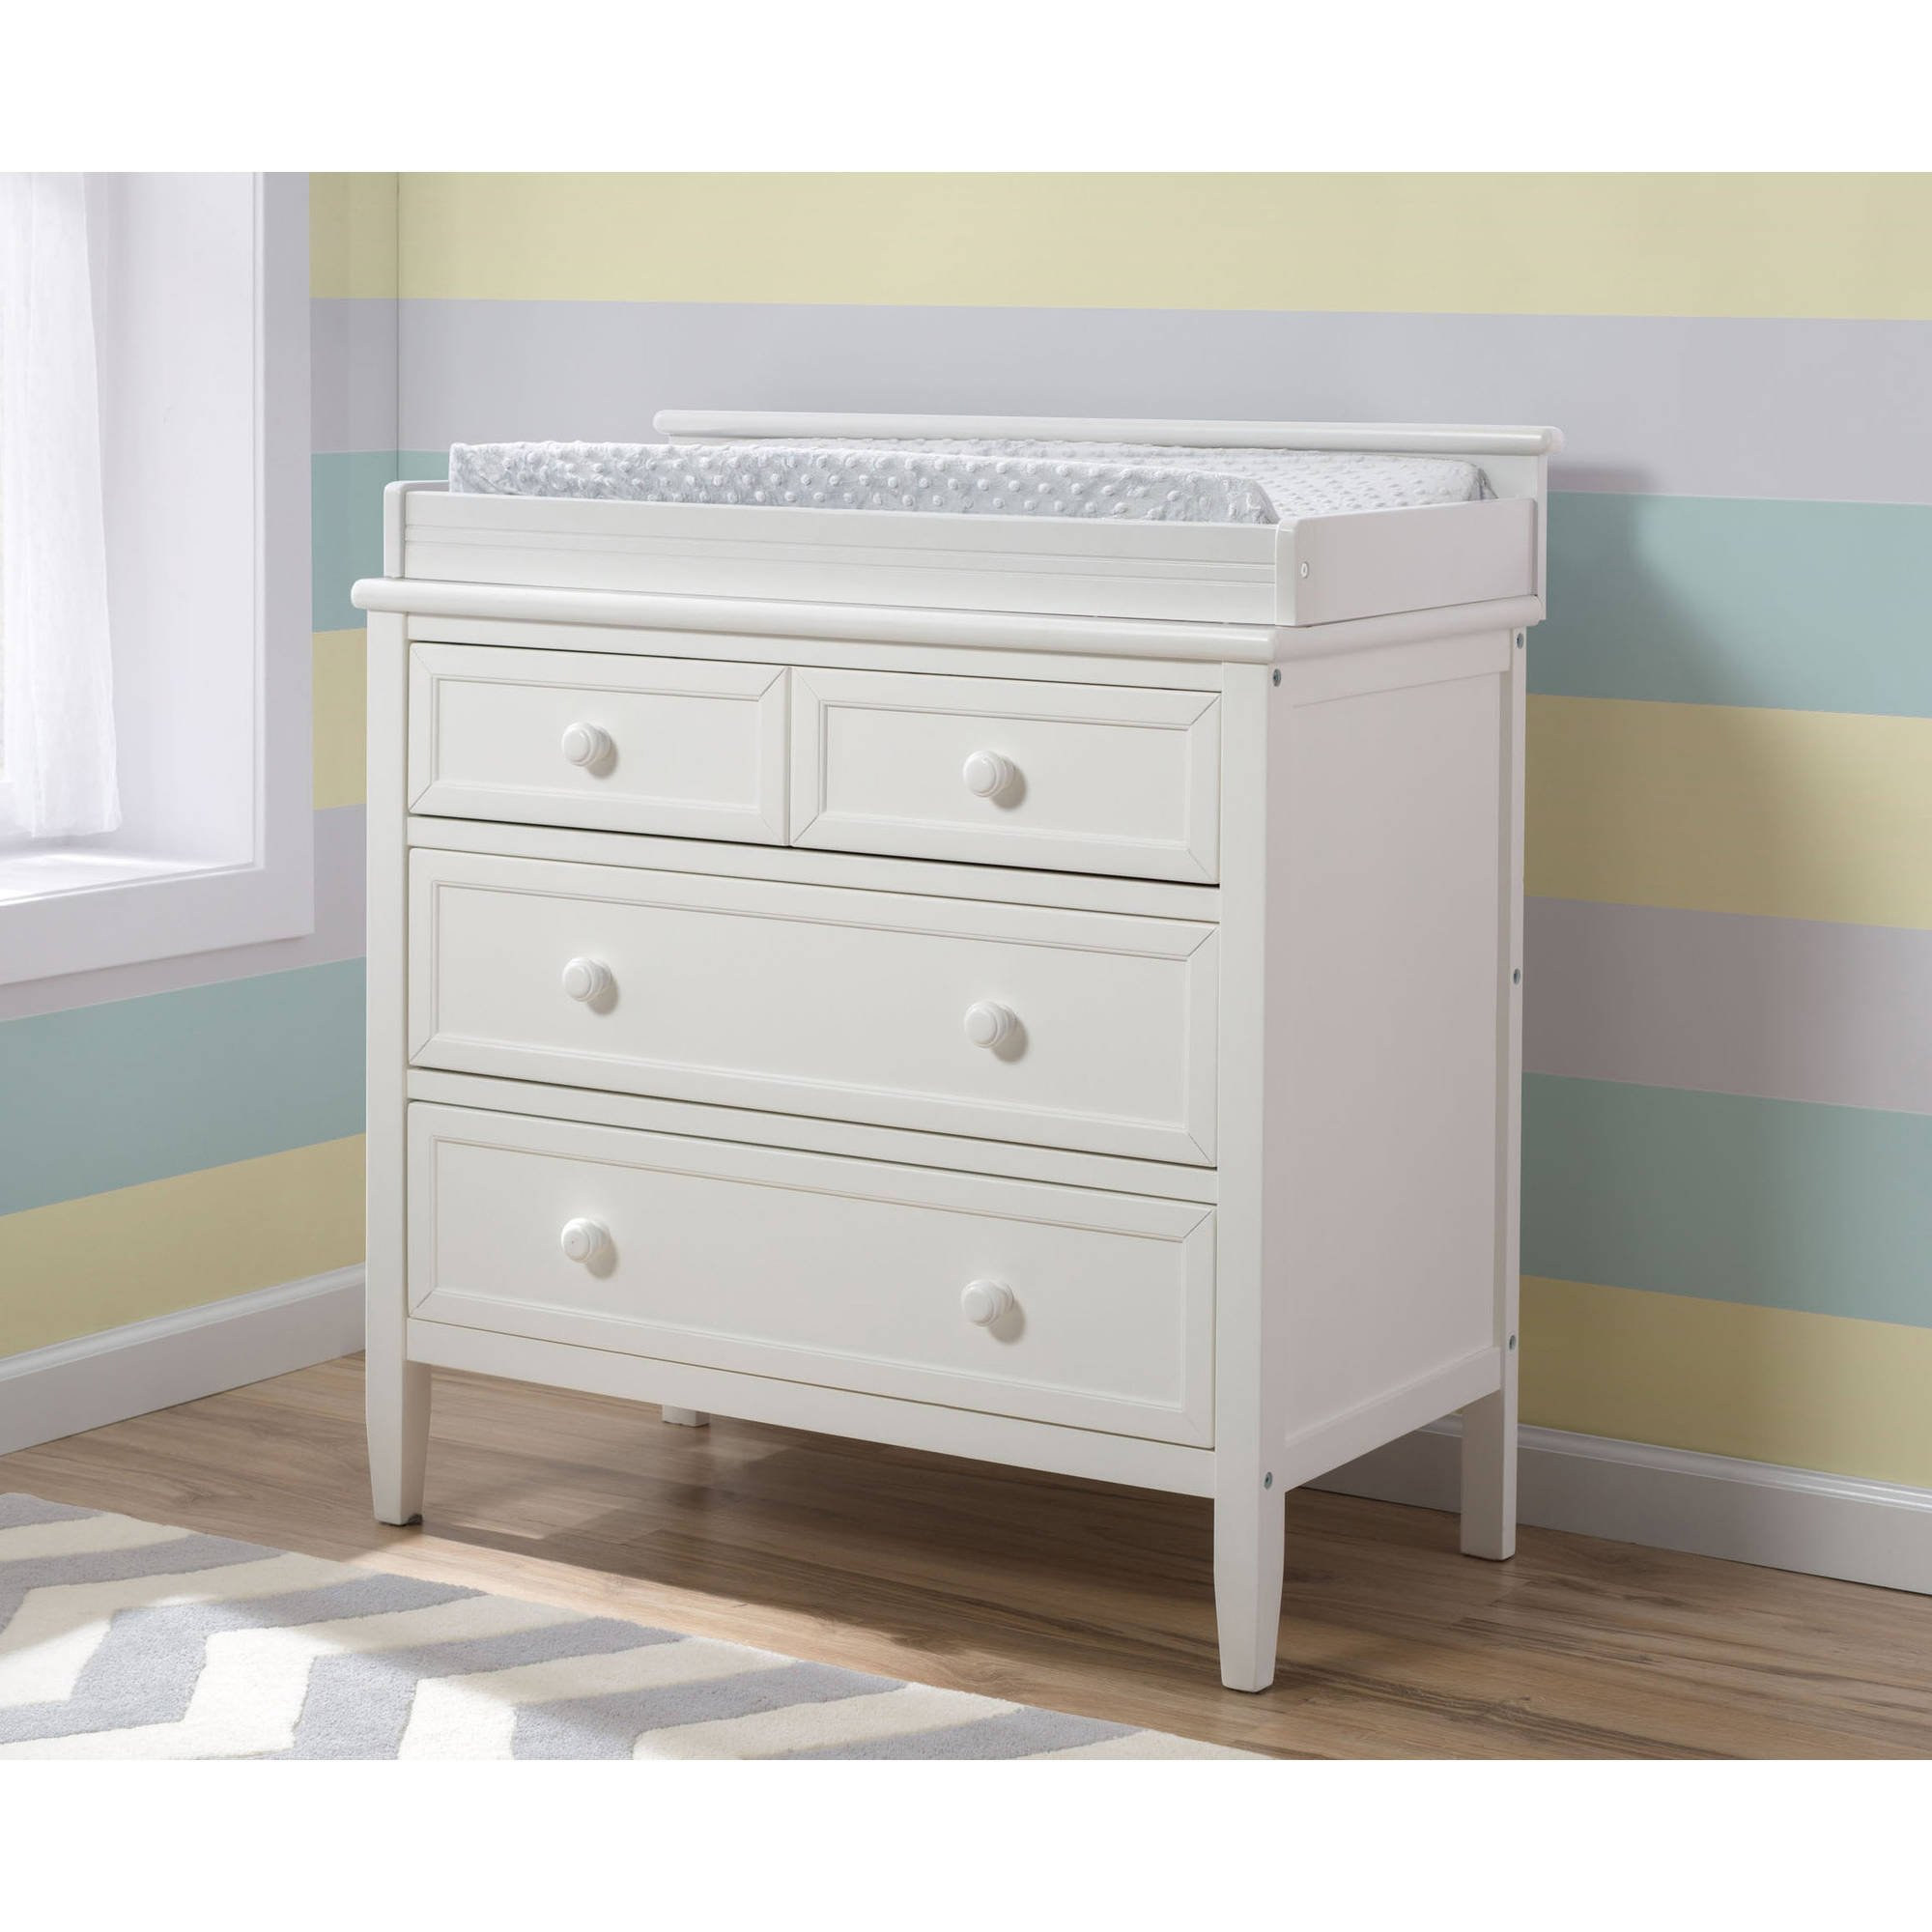 NEW! Delta Children Epic Signature Wood 3-Drawer Dresser with Changing Top for Kids with Ball Bearing Drawer Slides and Safety Stop, White